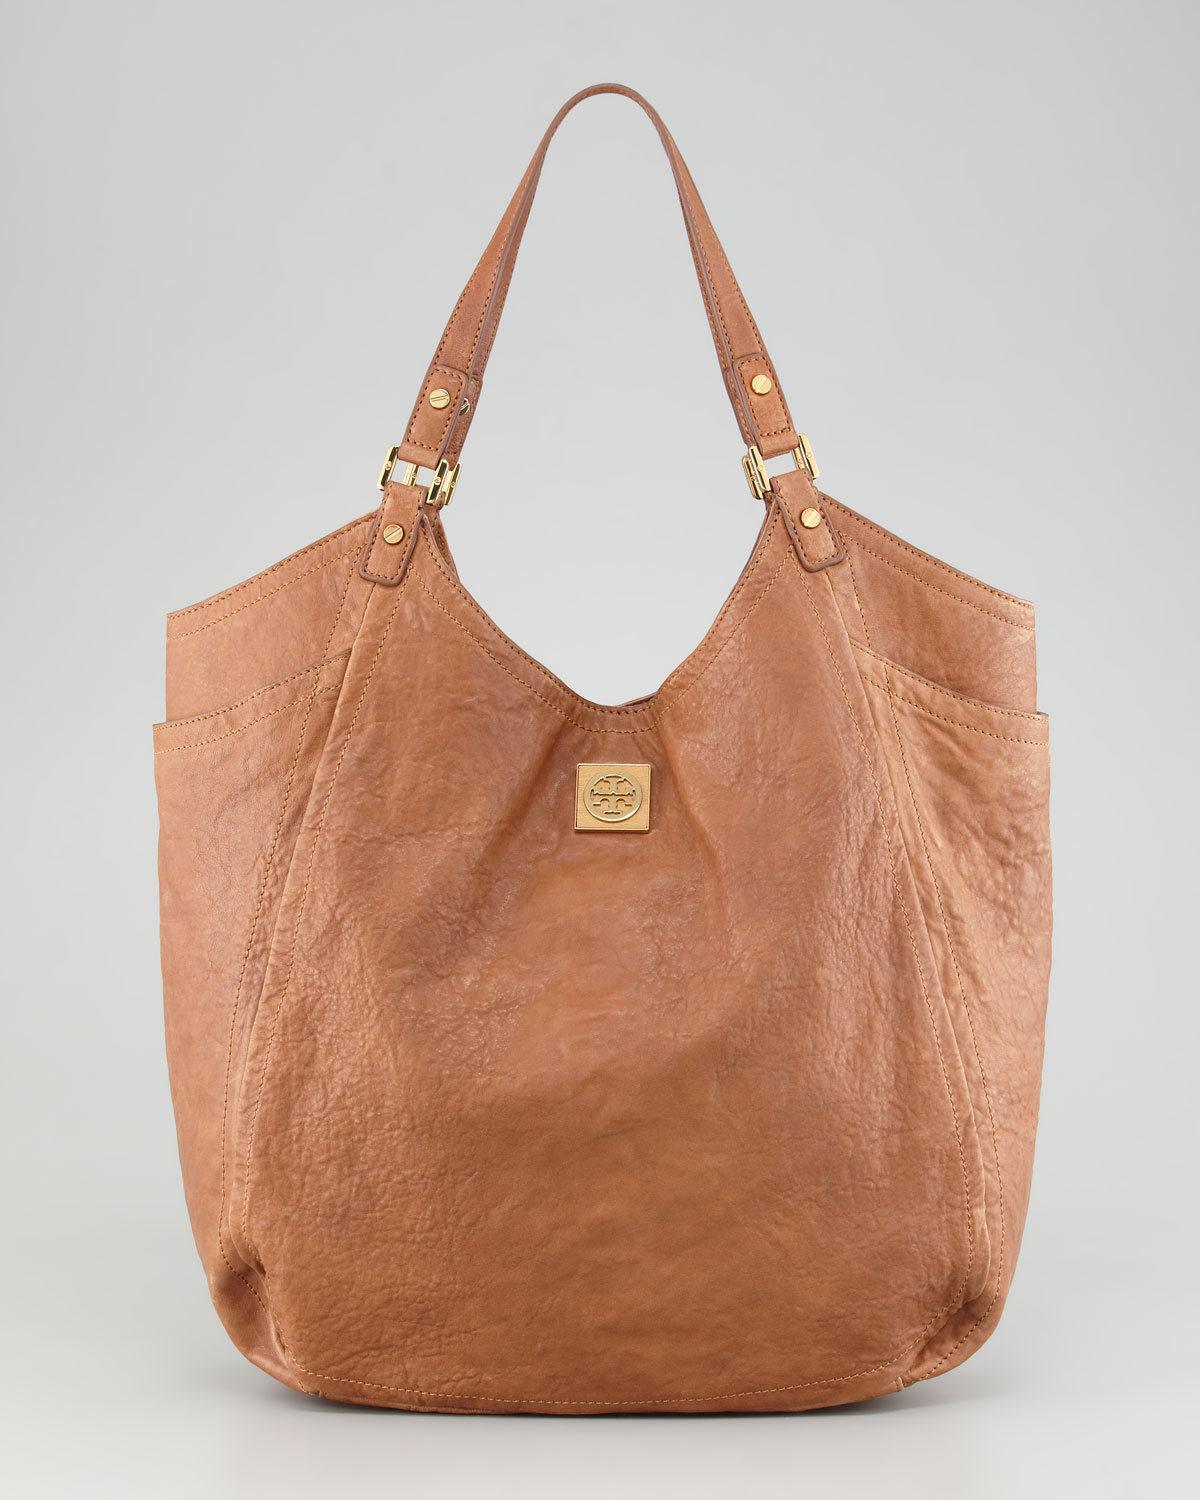 lyst tory burch louisa slouchy tote bag original in brown. Black Bedroom Furniture Sets. Home Design Ideas